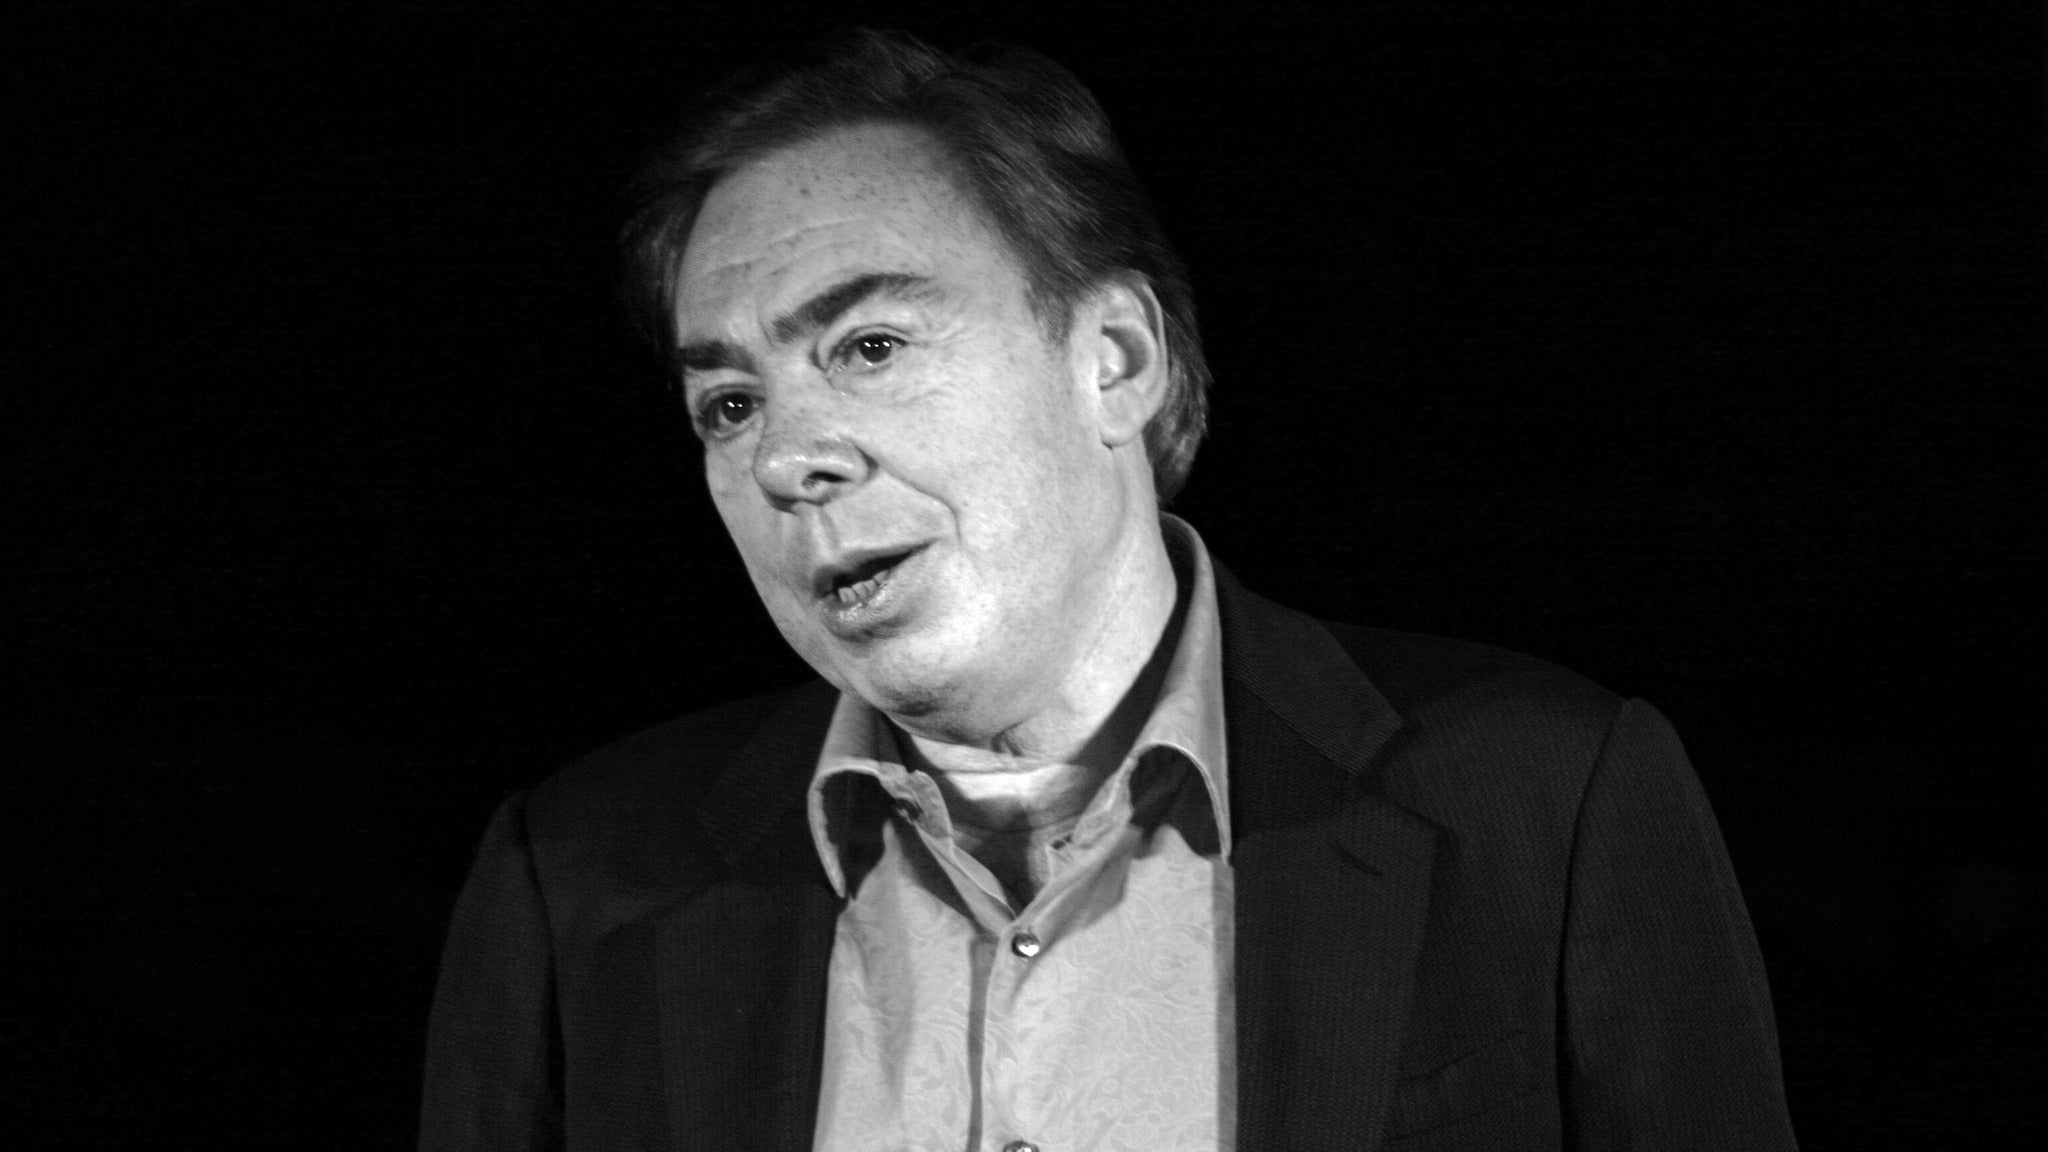 Andrew Lloyd Webber at The Old Church-OR